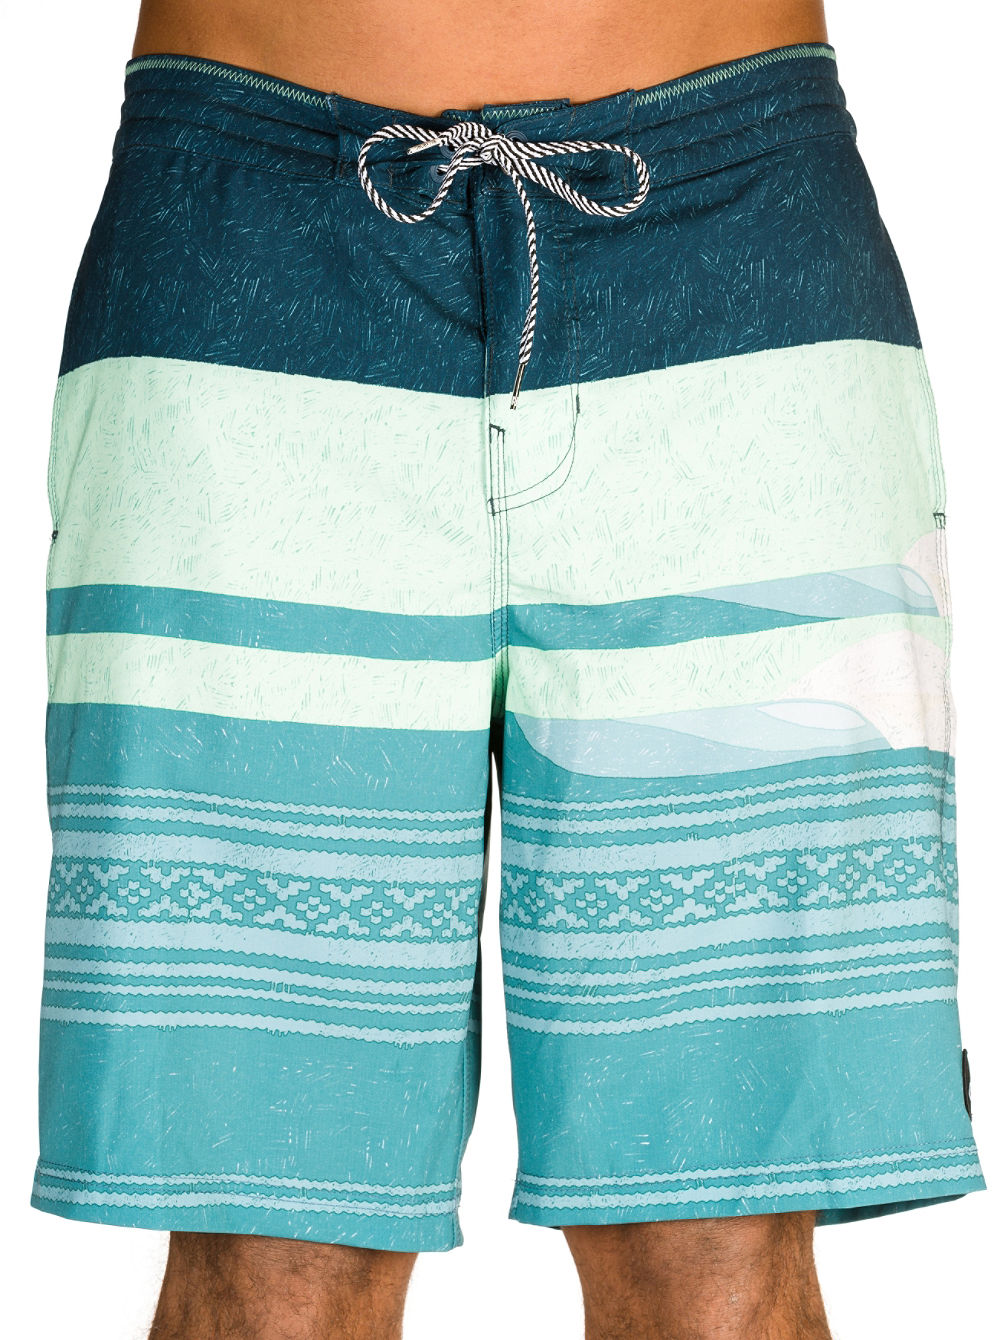 Gallery LT 18 Boardshorts